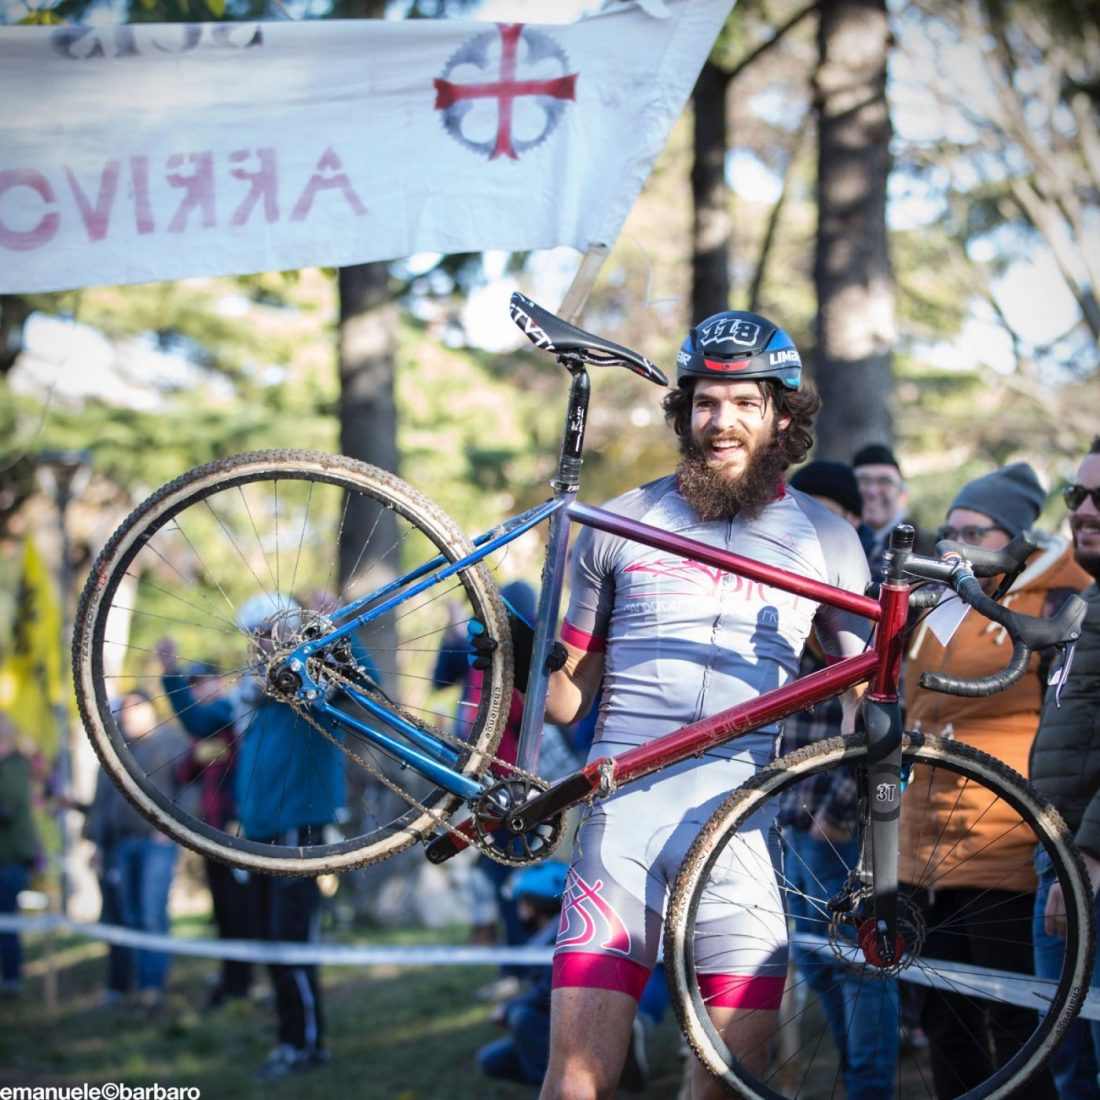 Andrea Pirazzoli new singlespeed world champion with Bice Bicycles Ingrid Components Verona SSCXWCITA17